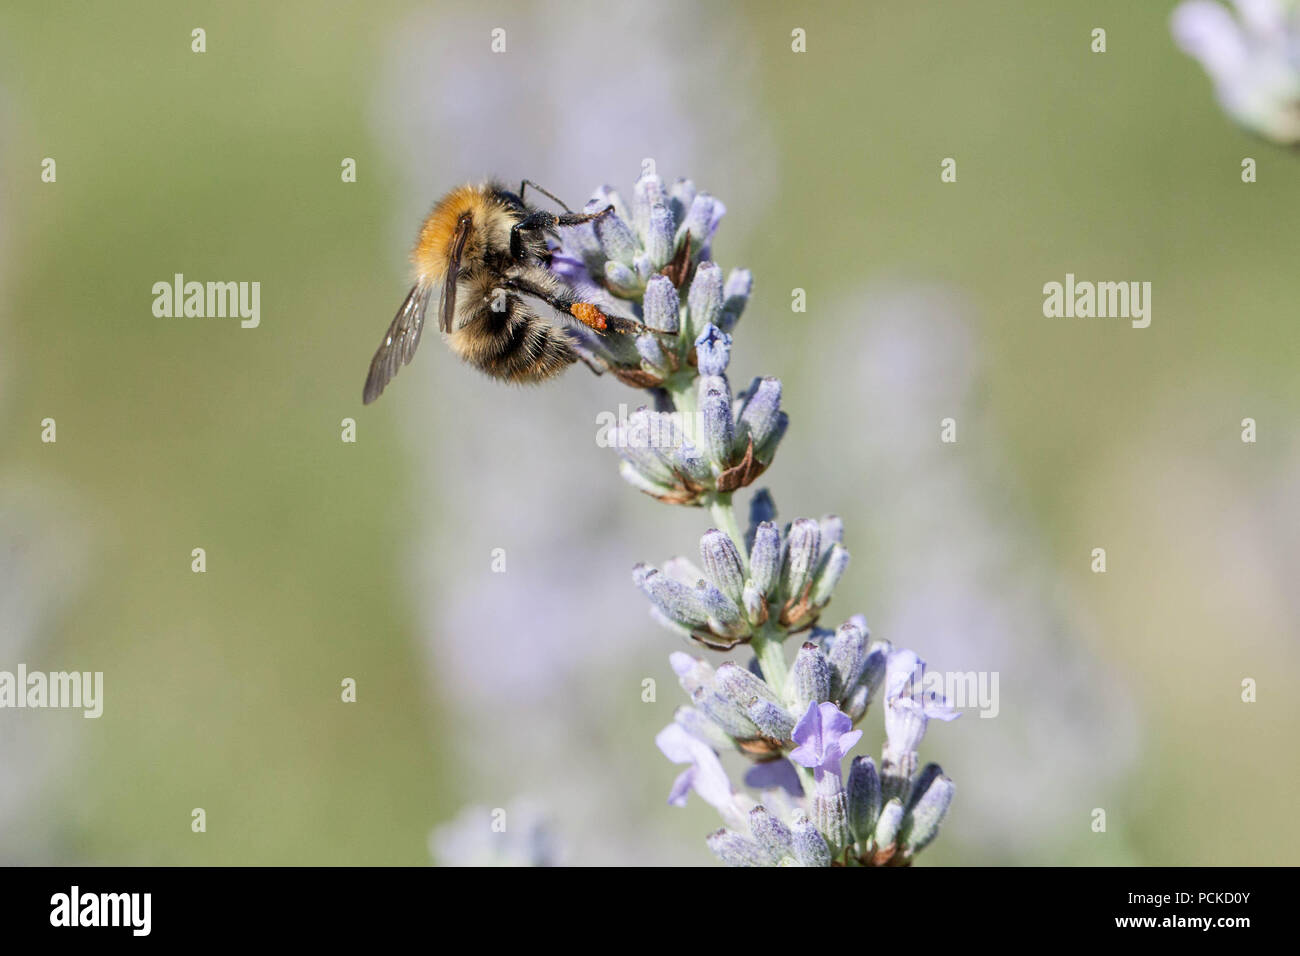 Bee on Lavender - Stock Image